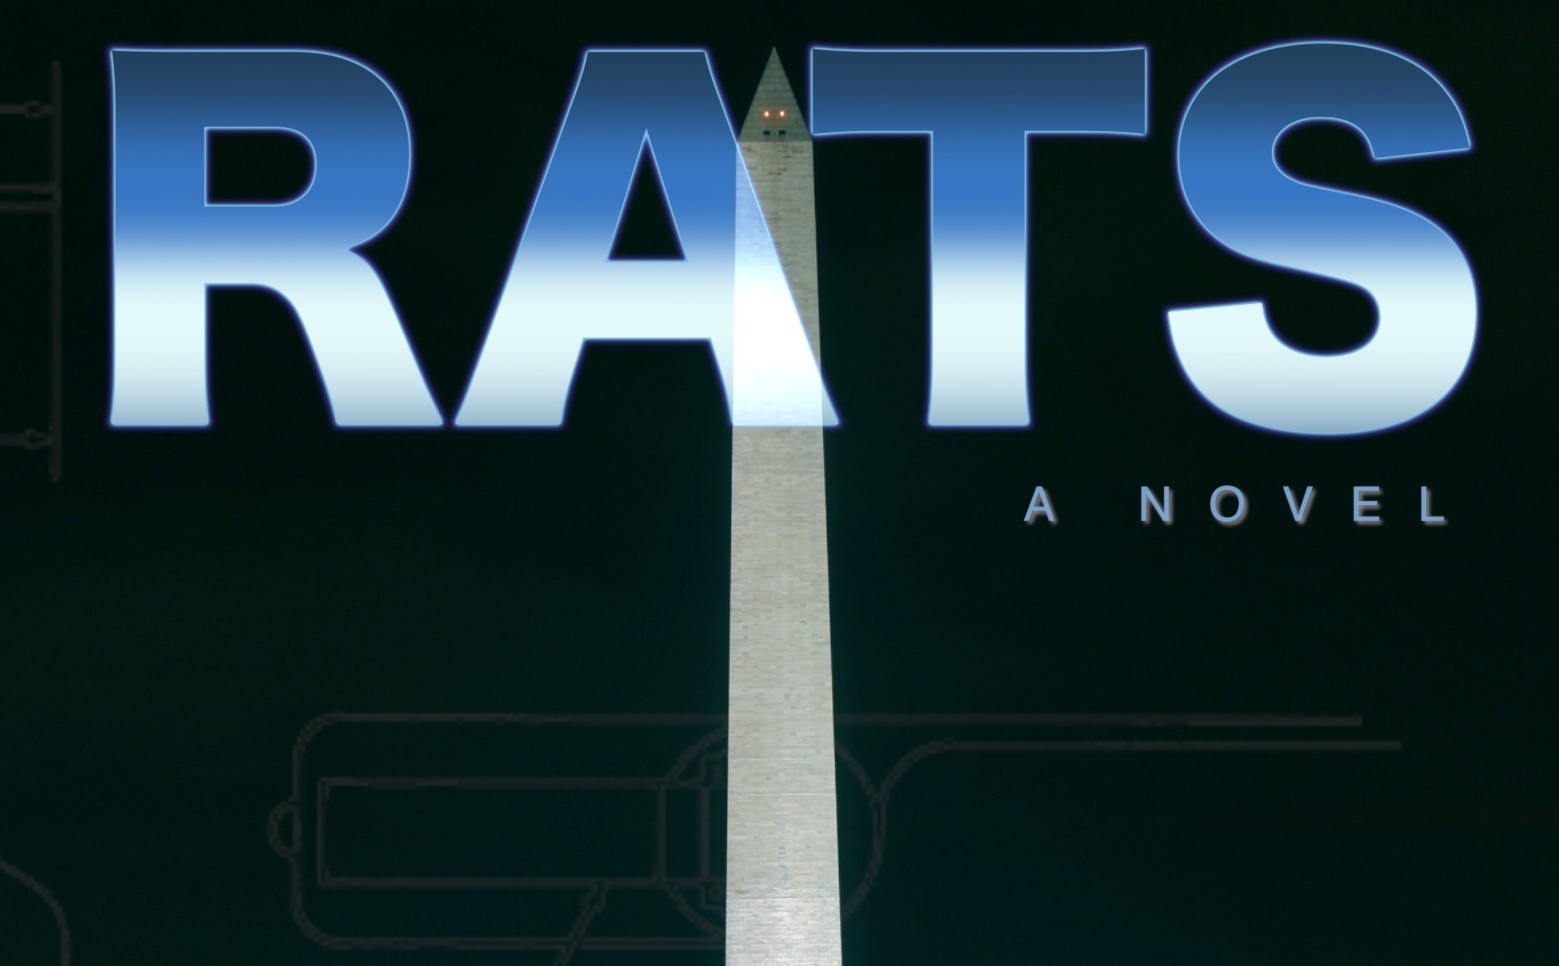 RATS now available at major eBook retailers